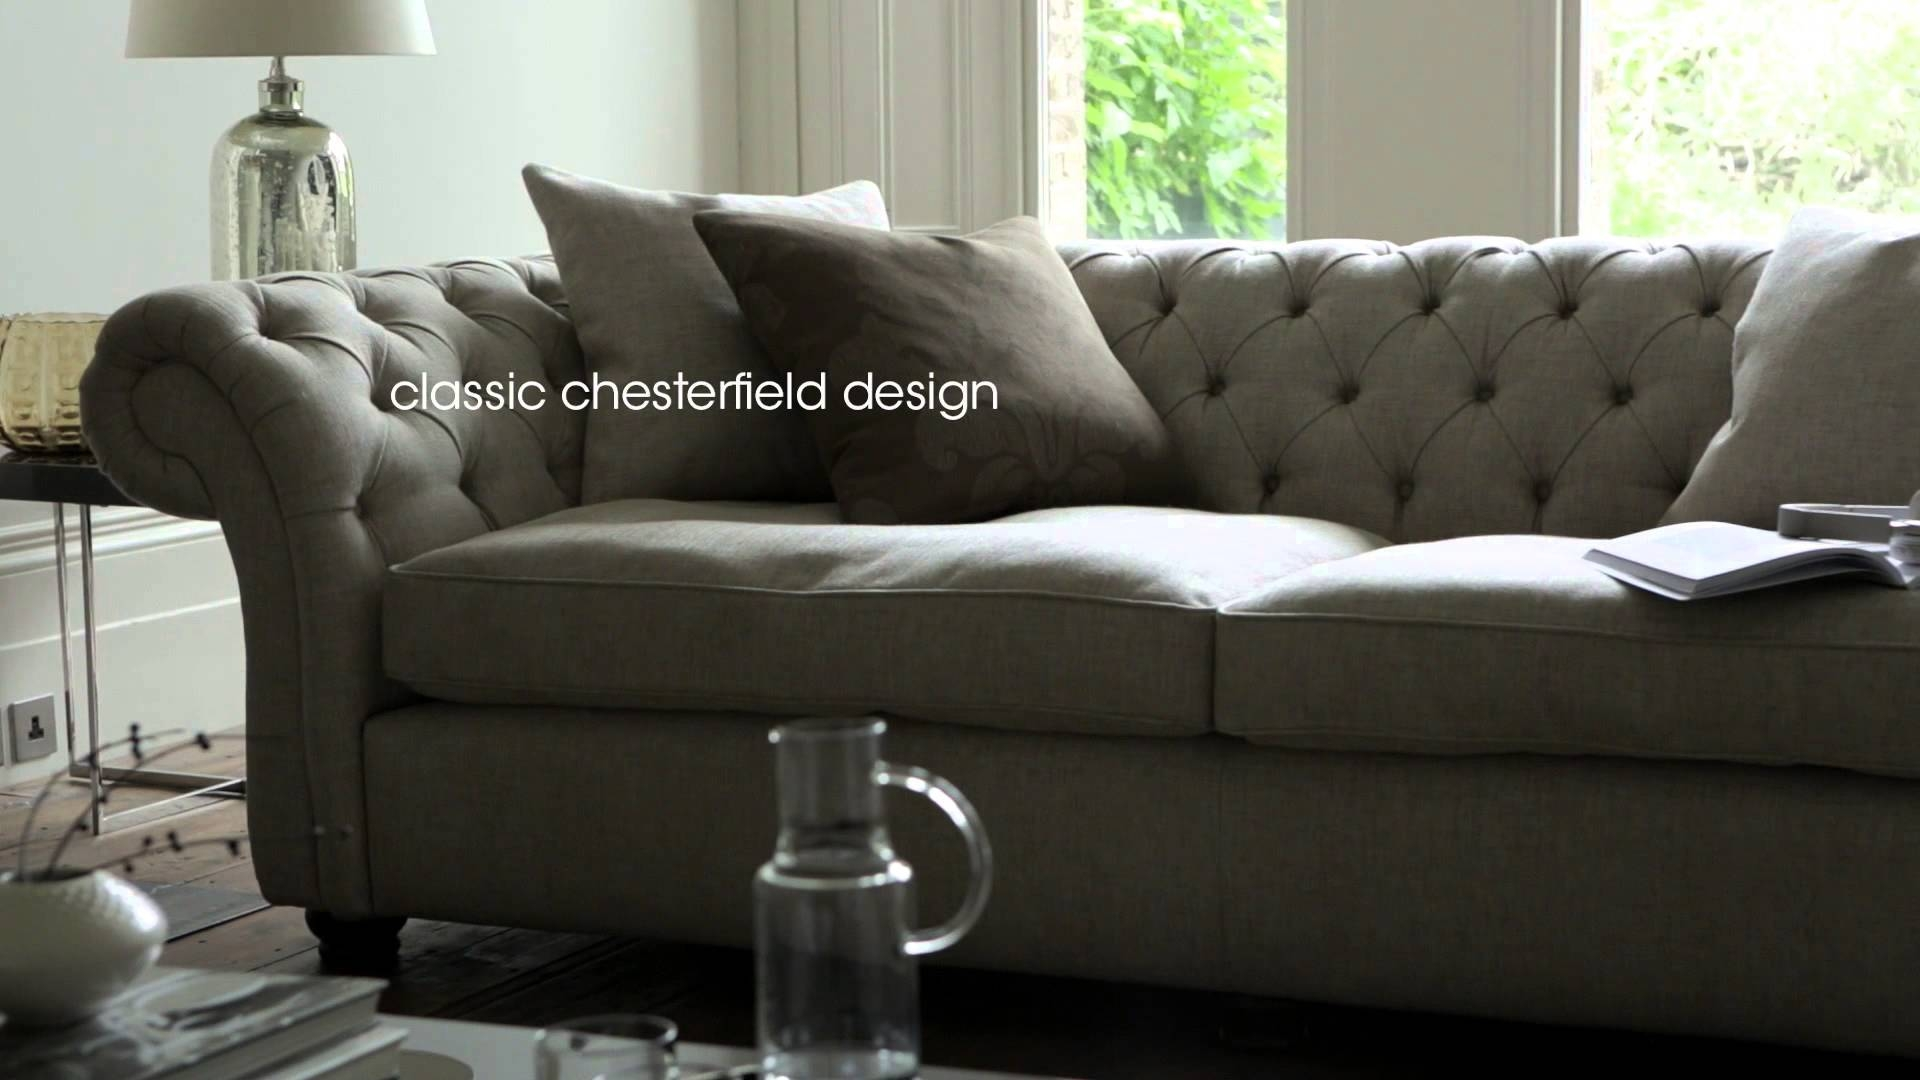 Fabric Chesterfield Sofas & Chairs - Langham Sofas & Furniture regarding Sofas and Chairs (Image 5 of 30)